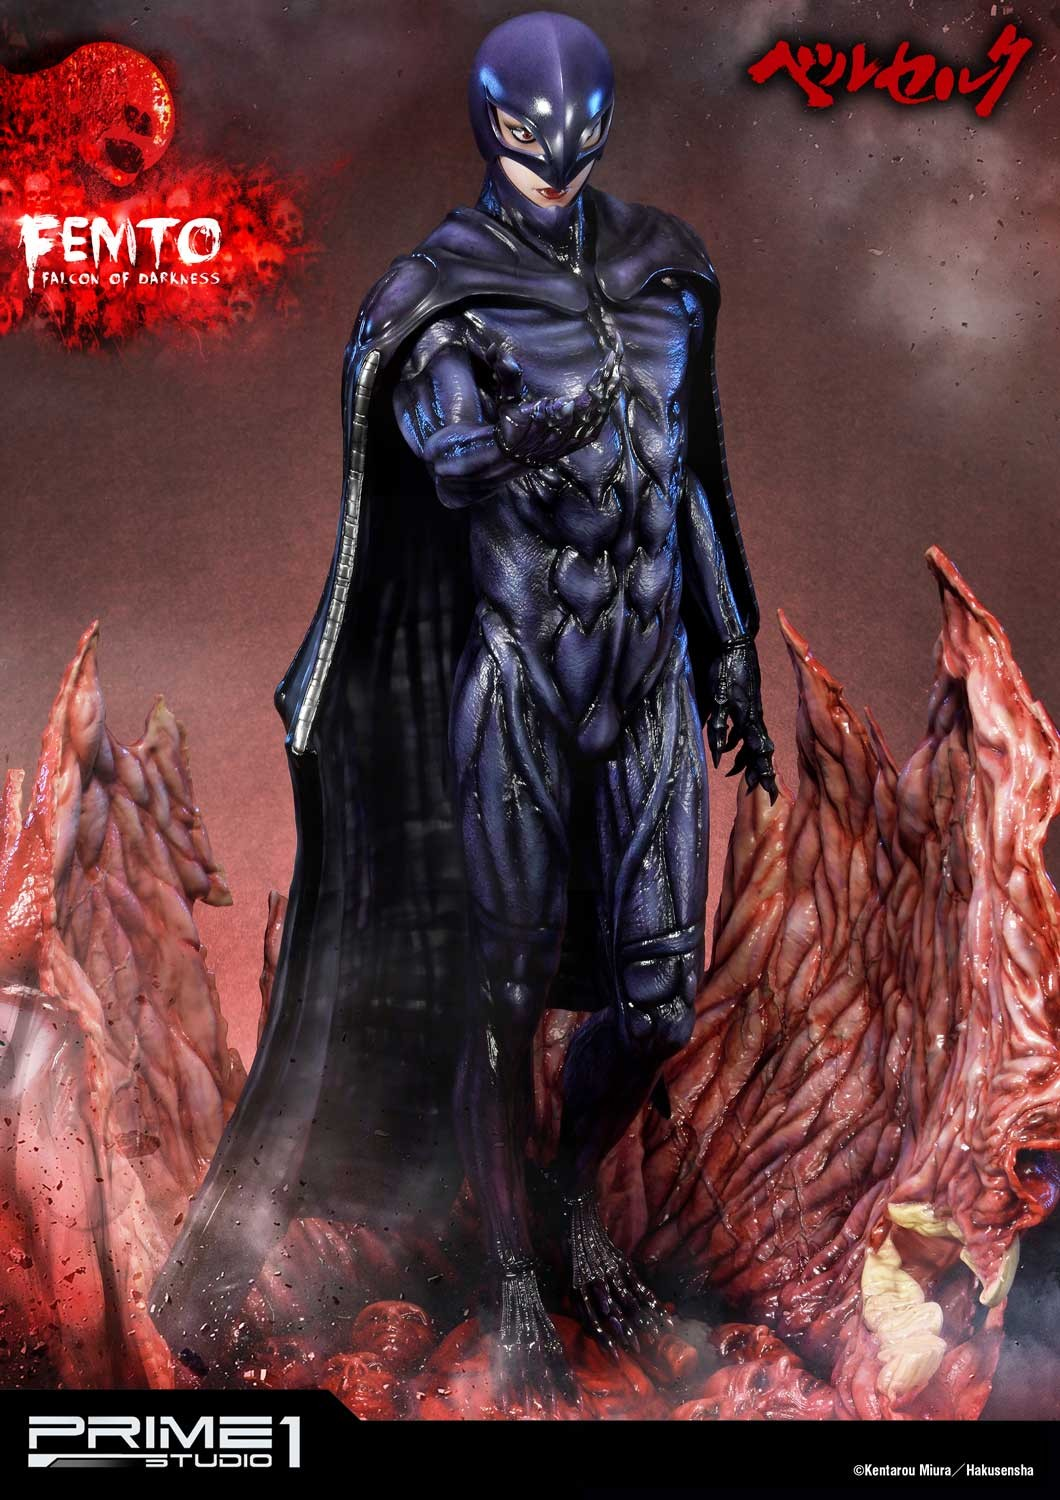 Link a Berserk Femto Falcon of Darkness Ultimate Premium Masterline Prime 1 Studio Itakon.it 21